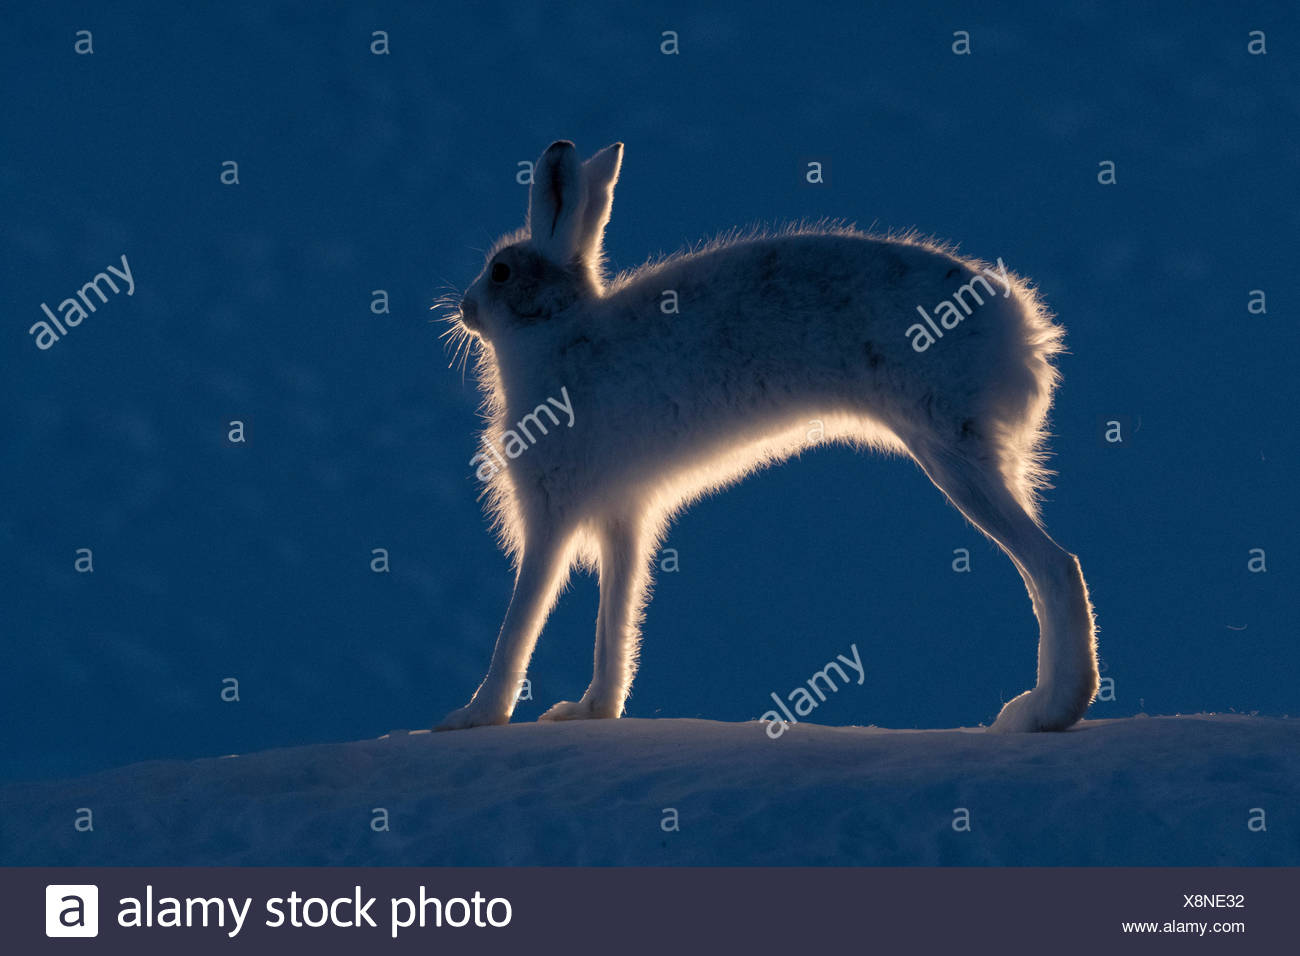 Mountain hare, Lepus timidus, stretching its legs. - Stock Image